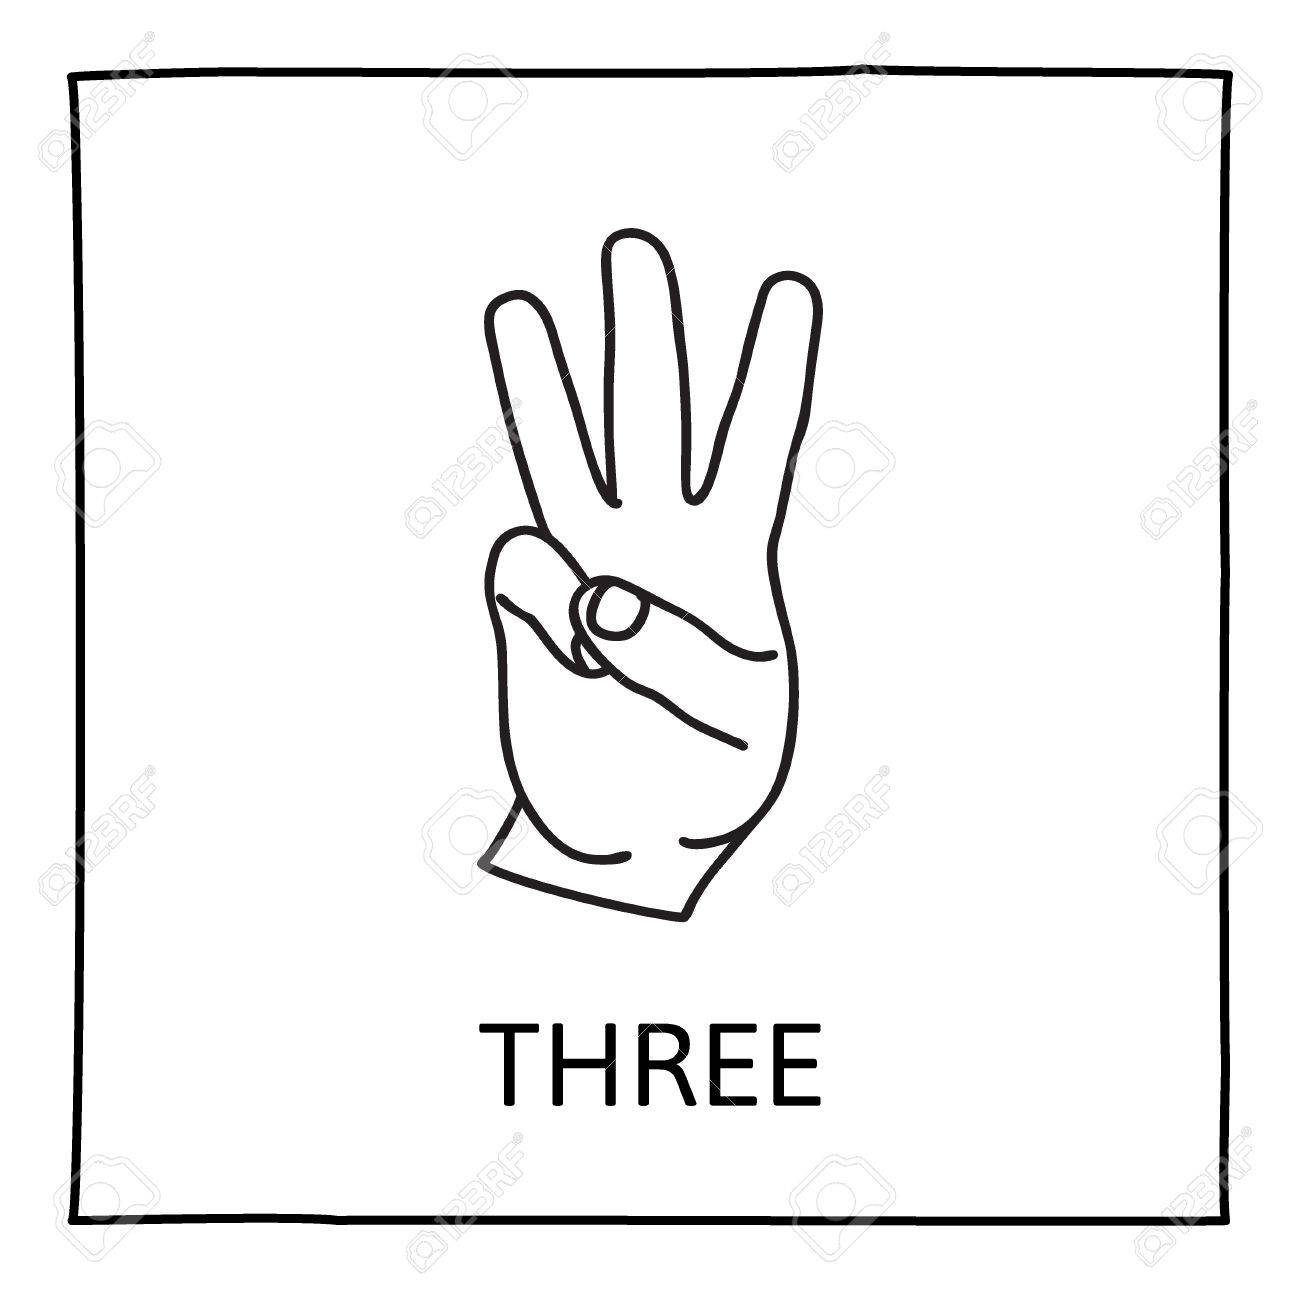 doodle palm icon counting hands showing three fingers graphic